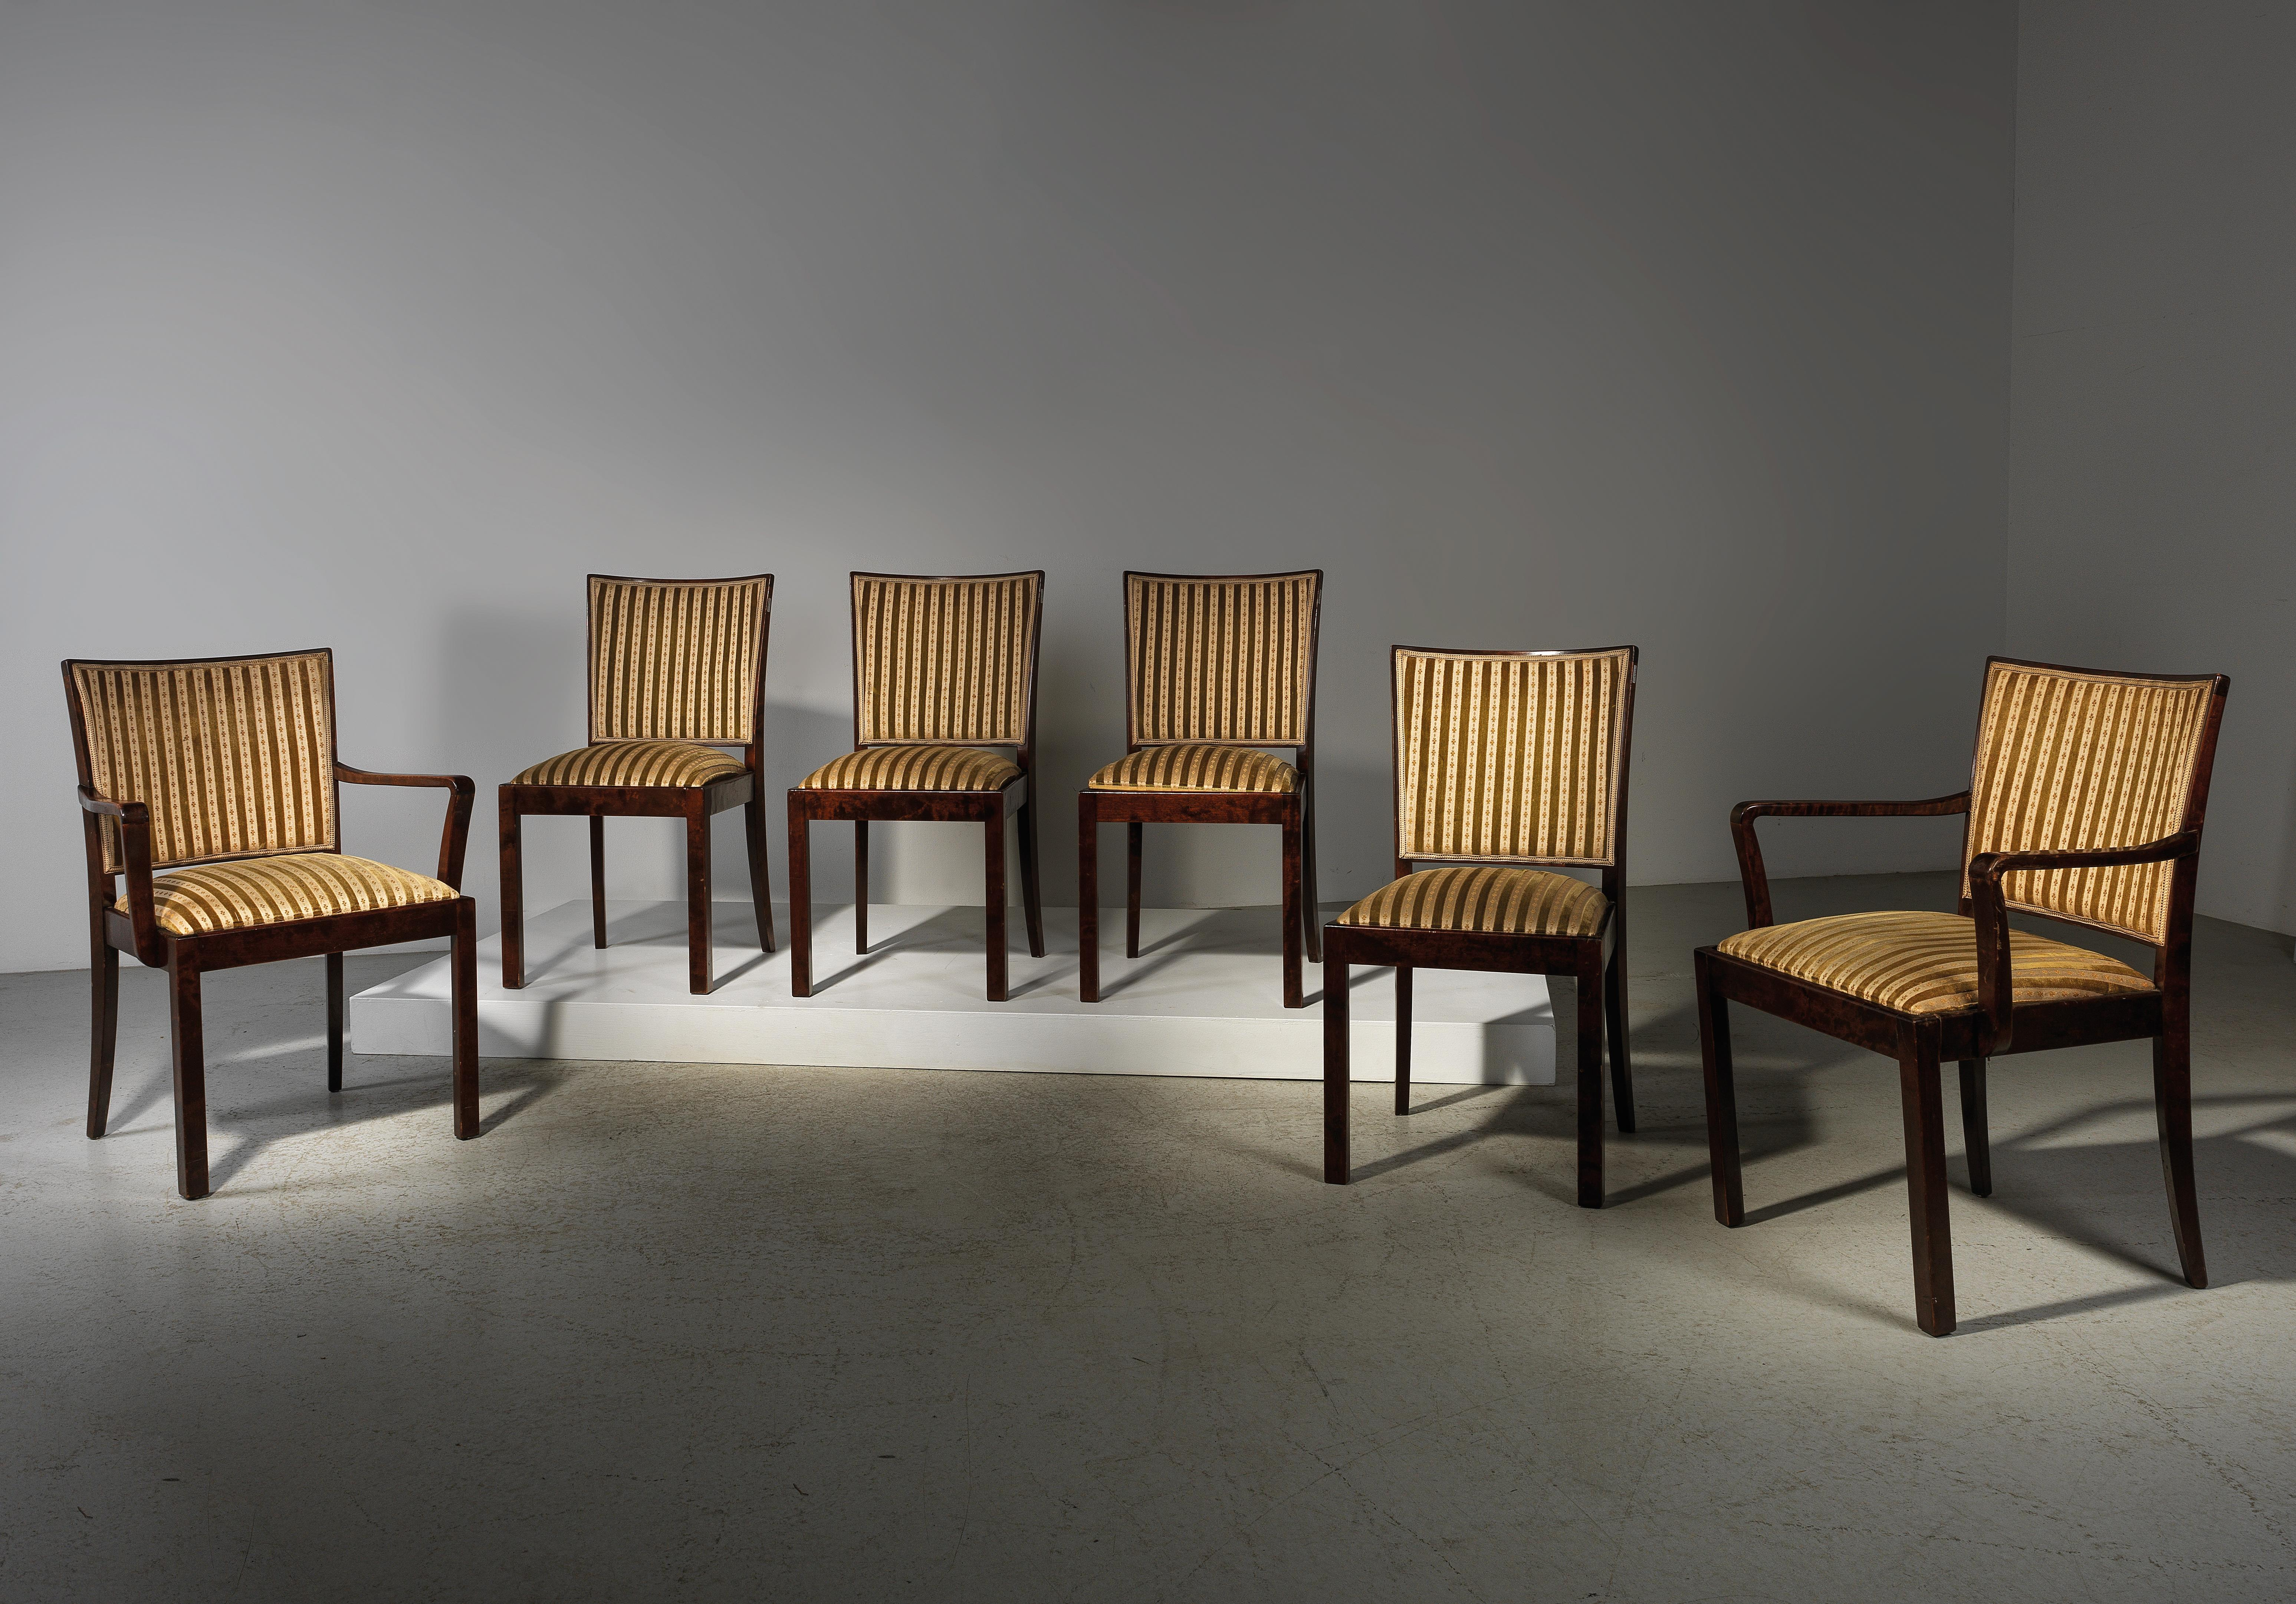 A Set Of Four Upholstered Chairs And Two Armchairs Mod 350 11 From Dining Room 357 Designed By Bruno Paul Design 2019 10 02 Estimate Eur 1 500 To Eur 2 000 Dorotheum